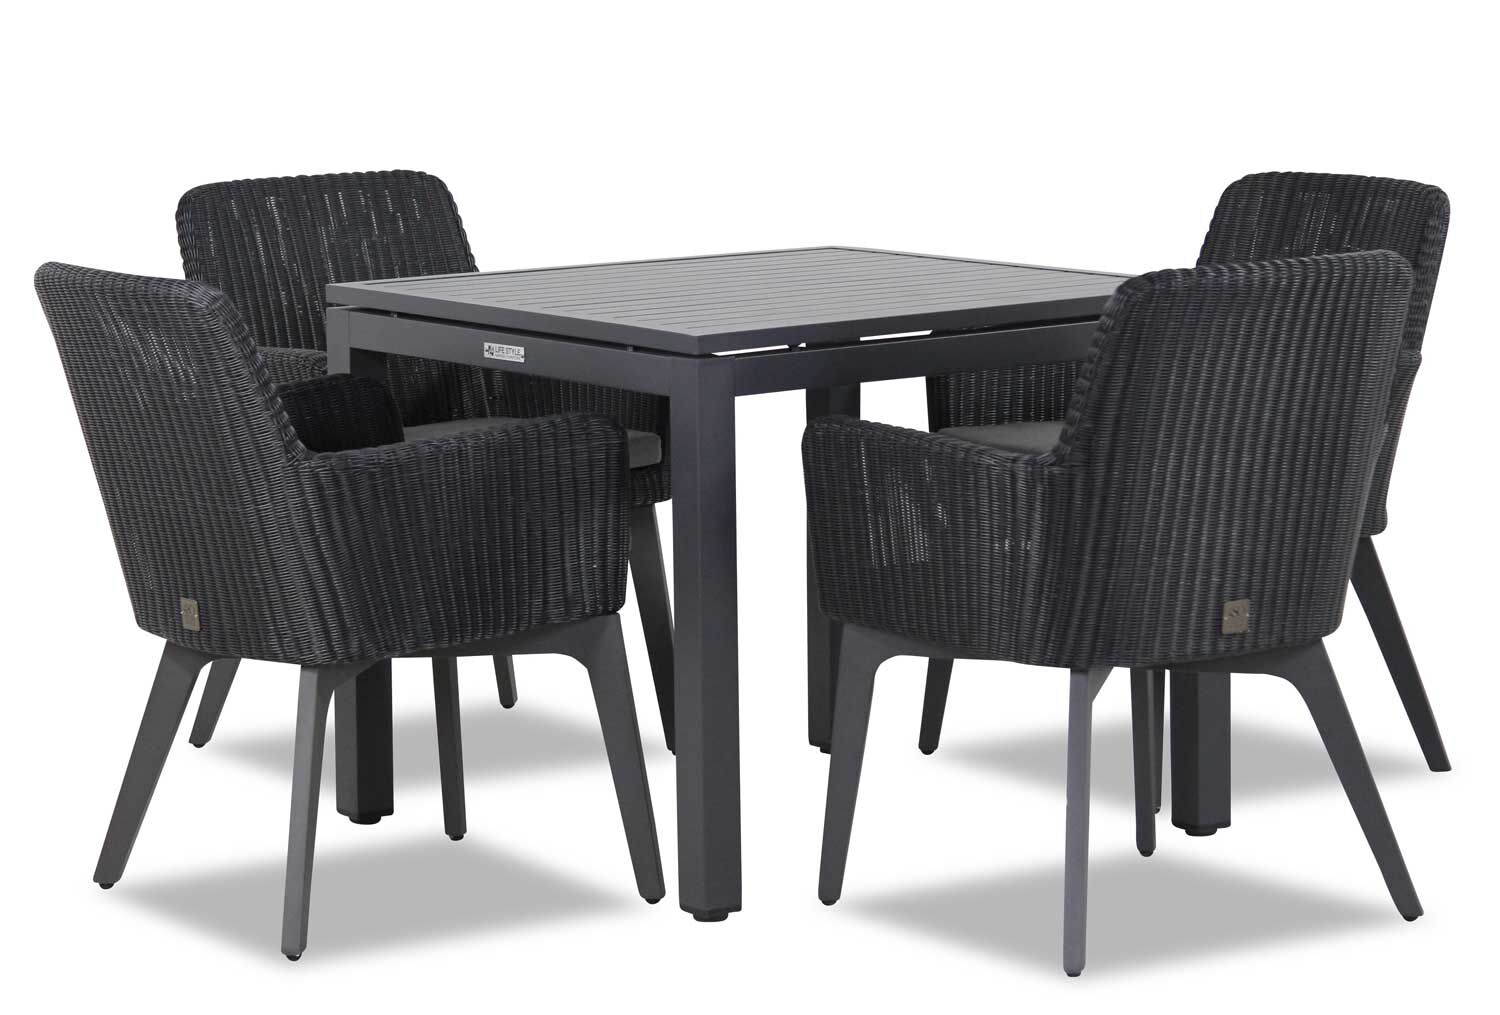 4 Seasons Outdoor Lisboa/Concept 90 cm dining tuinset 5-delig